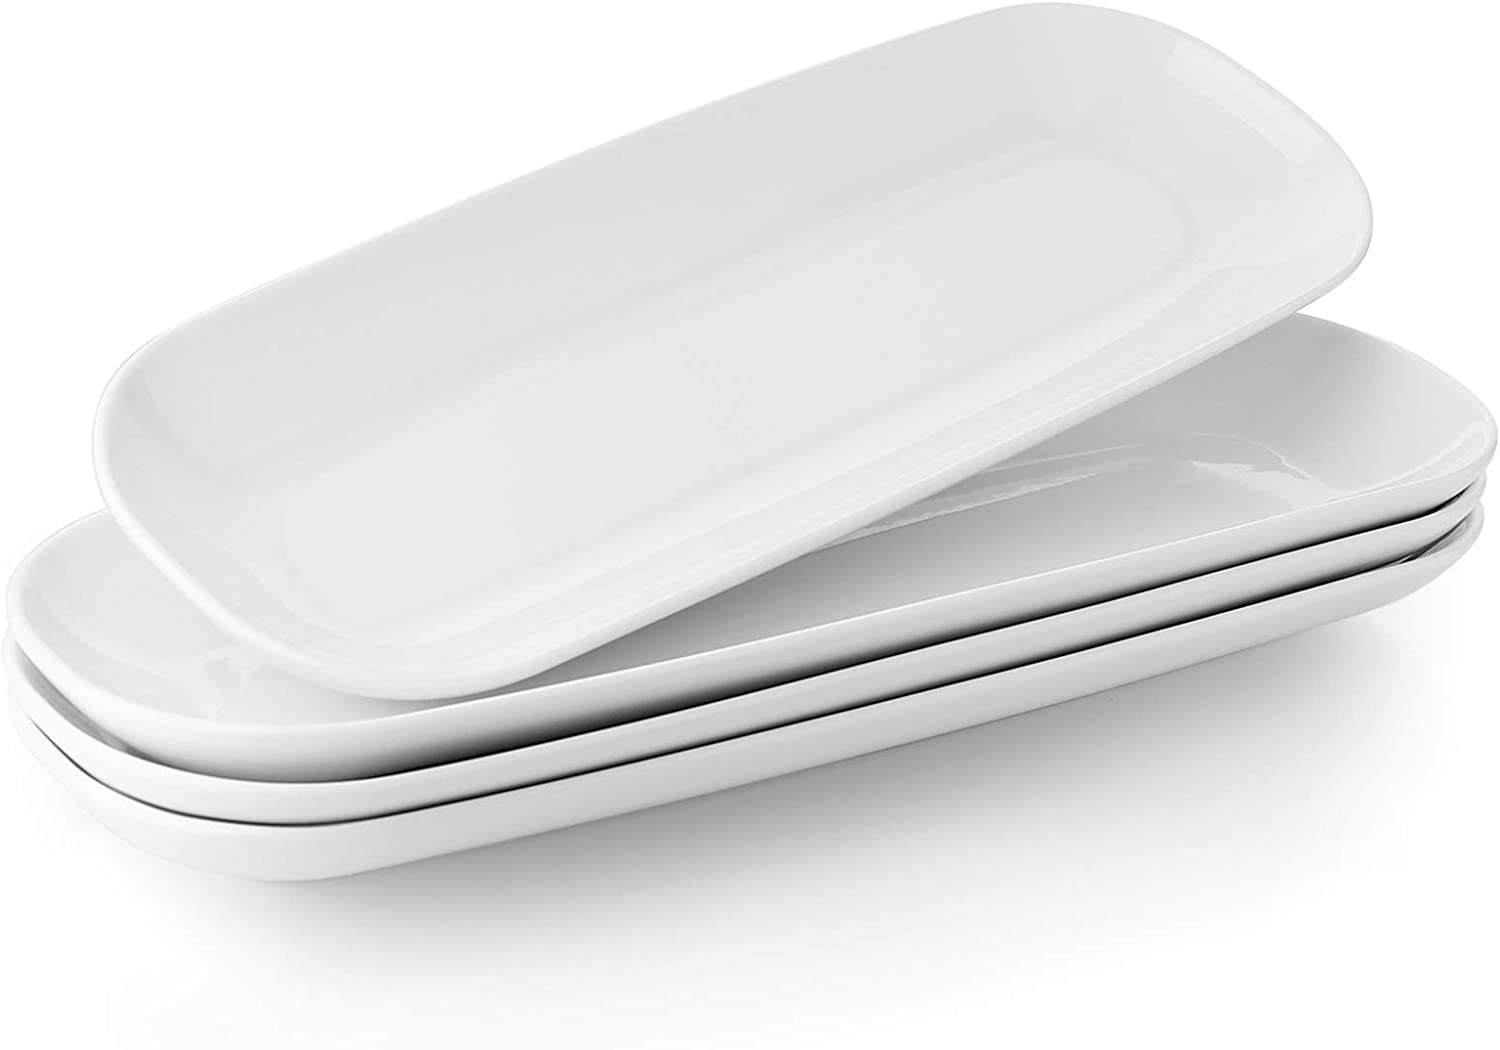 Teocera Porcelain Serving Platter Set, Serving Plates - 15.5 Inches, Serving Trays for Appetizers, Dessert, Food, Parties - Large - Set of 4, White